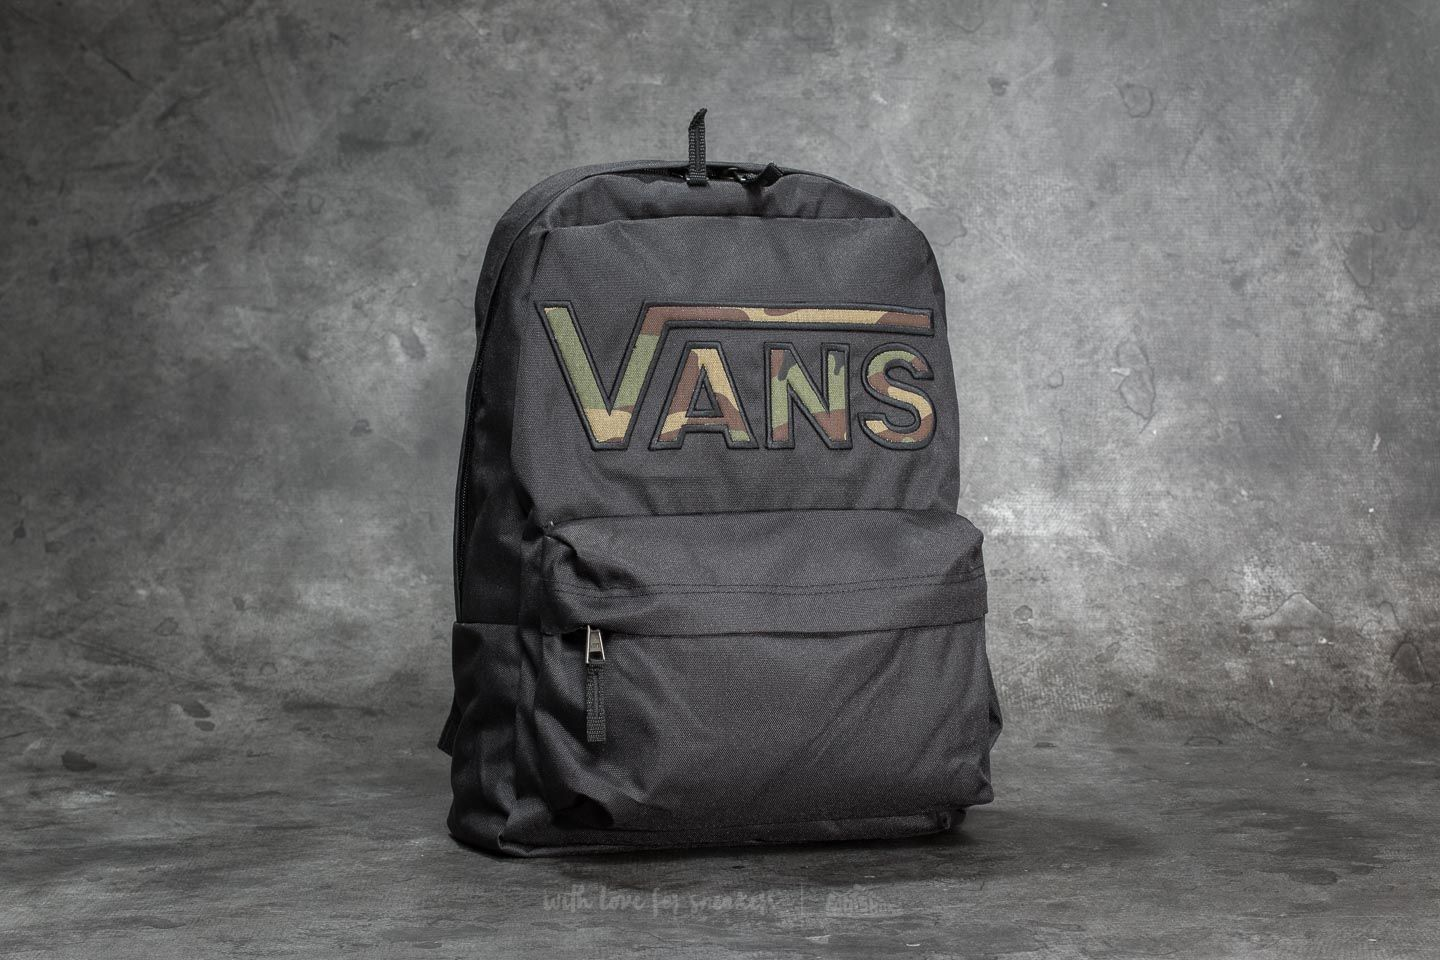 fb82adc4e6405 Vans Realm Flying V Backpack Black  Camo